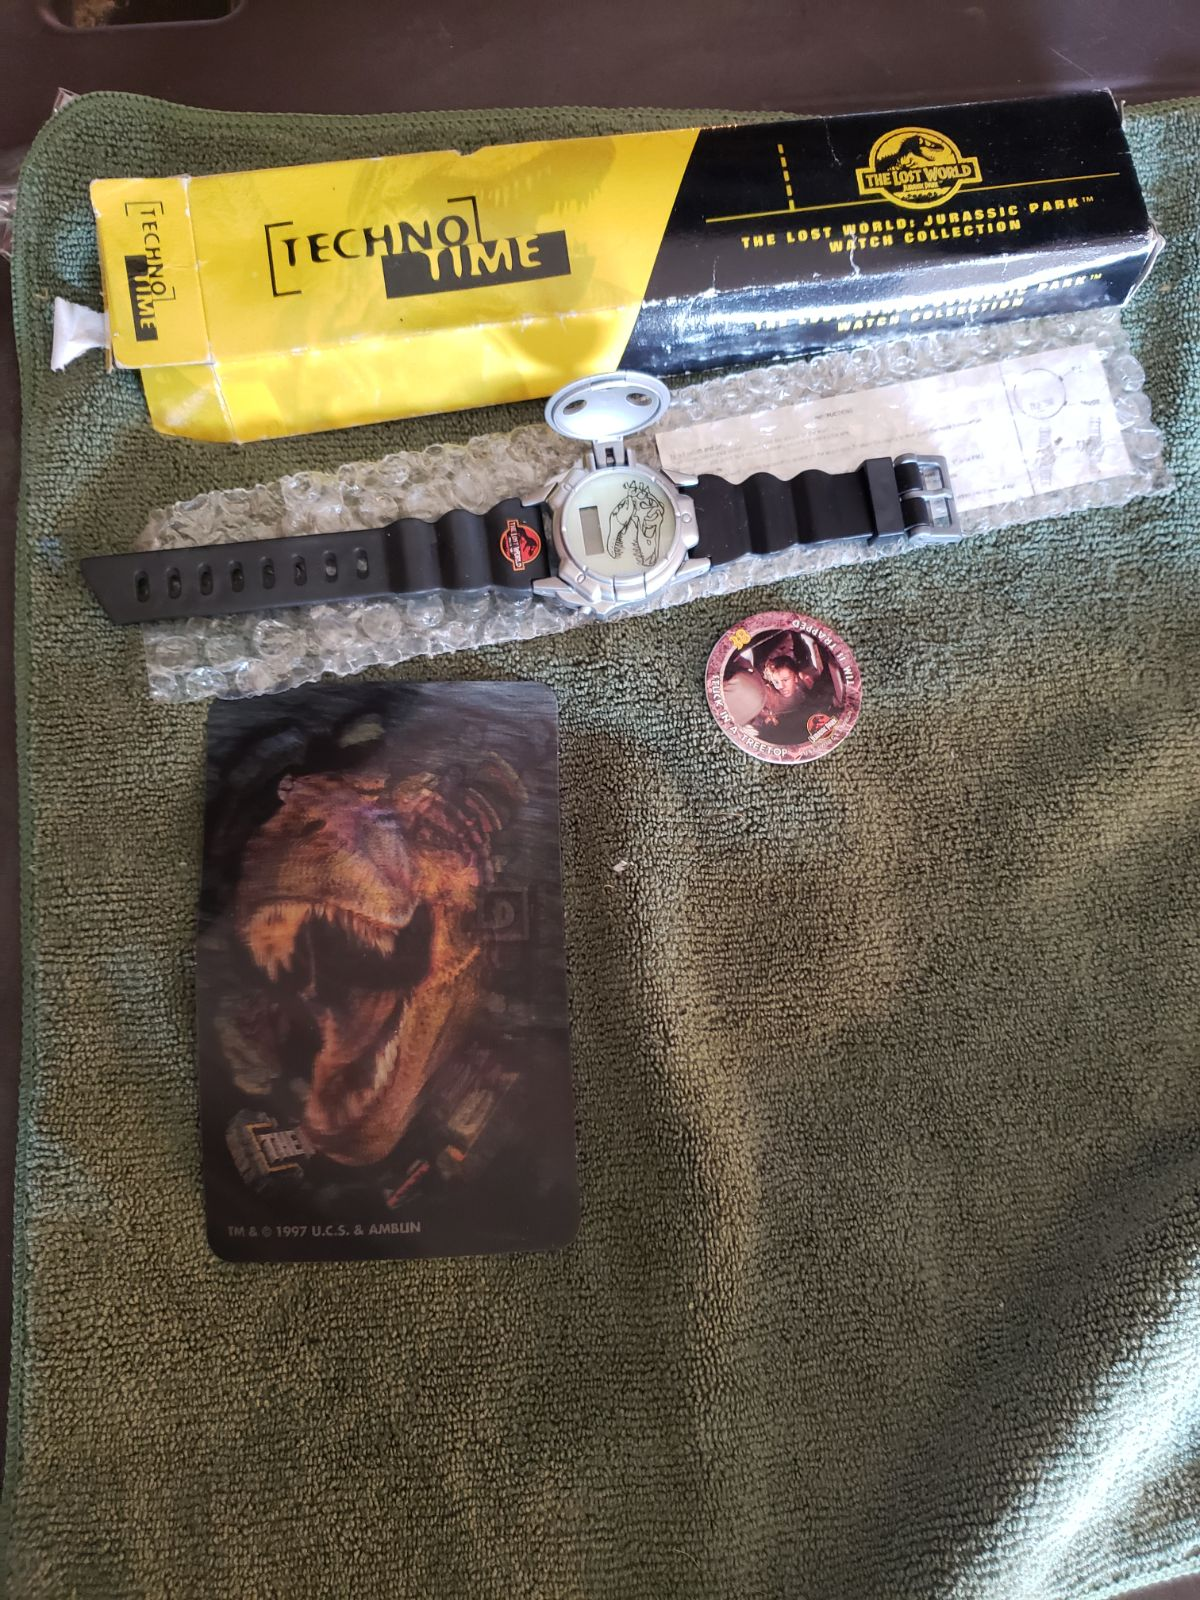 Jurassic Park the lost world watch and 3